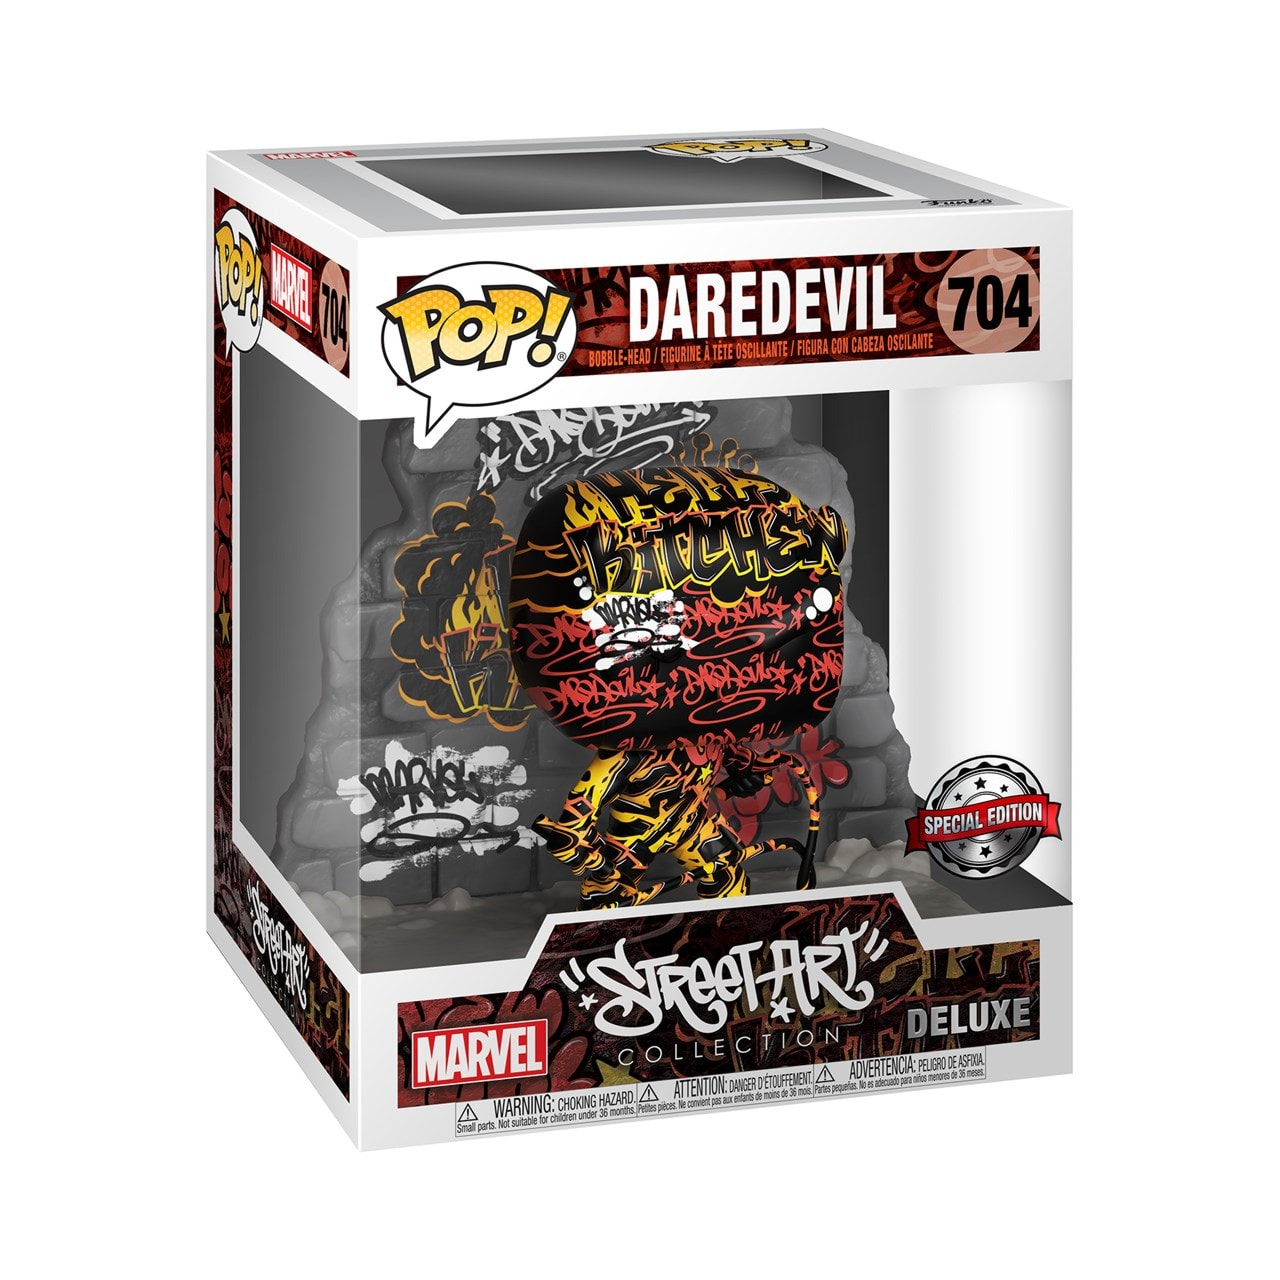 Daredevil Graffiti Deco (704) Marvel Street Art Collection (hmv Exclusive) Deluxe Pop Vinyl - 2